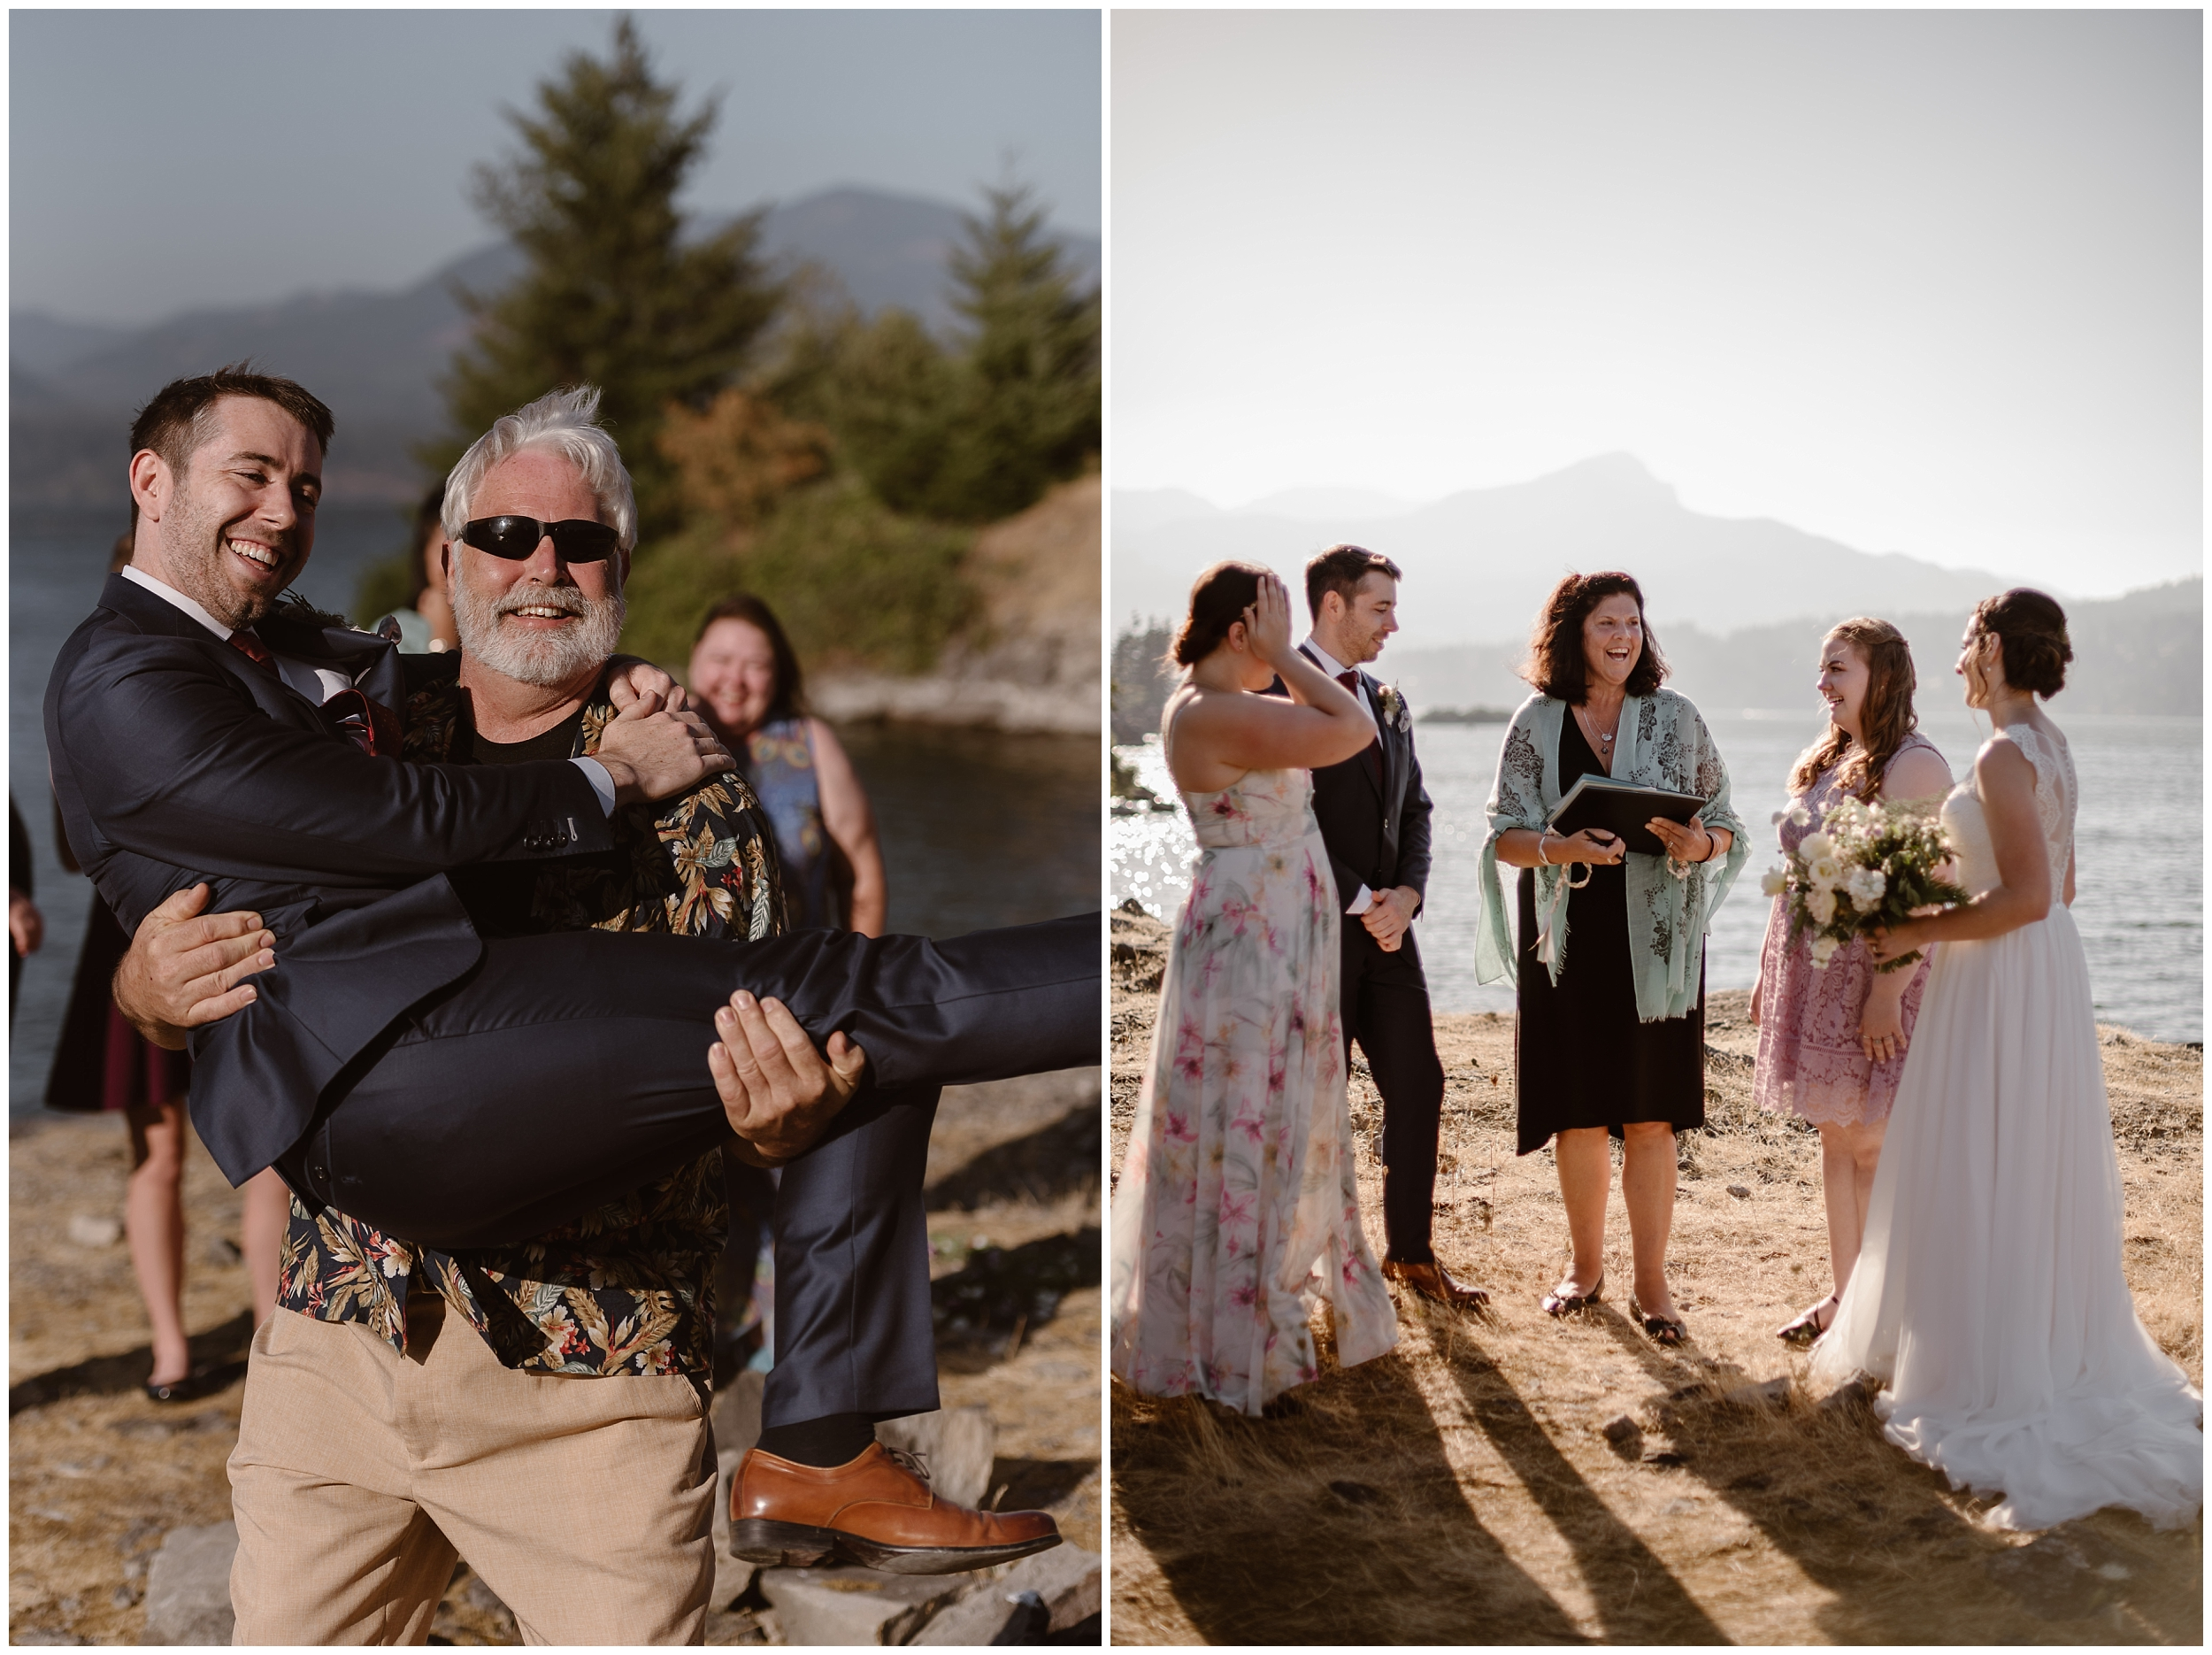 These side-by-side elopement pictures show family and friends celebrating with the bride and groom immediately after their elopement ceremony in the Columbia River Gorge. In one photo, a man picks up the groom and poses with him for an elopement photo.